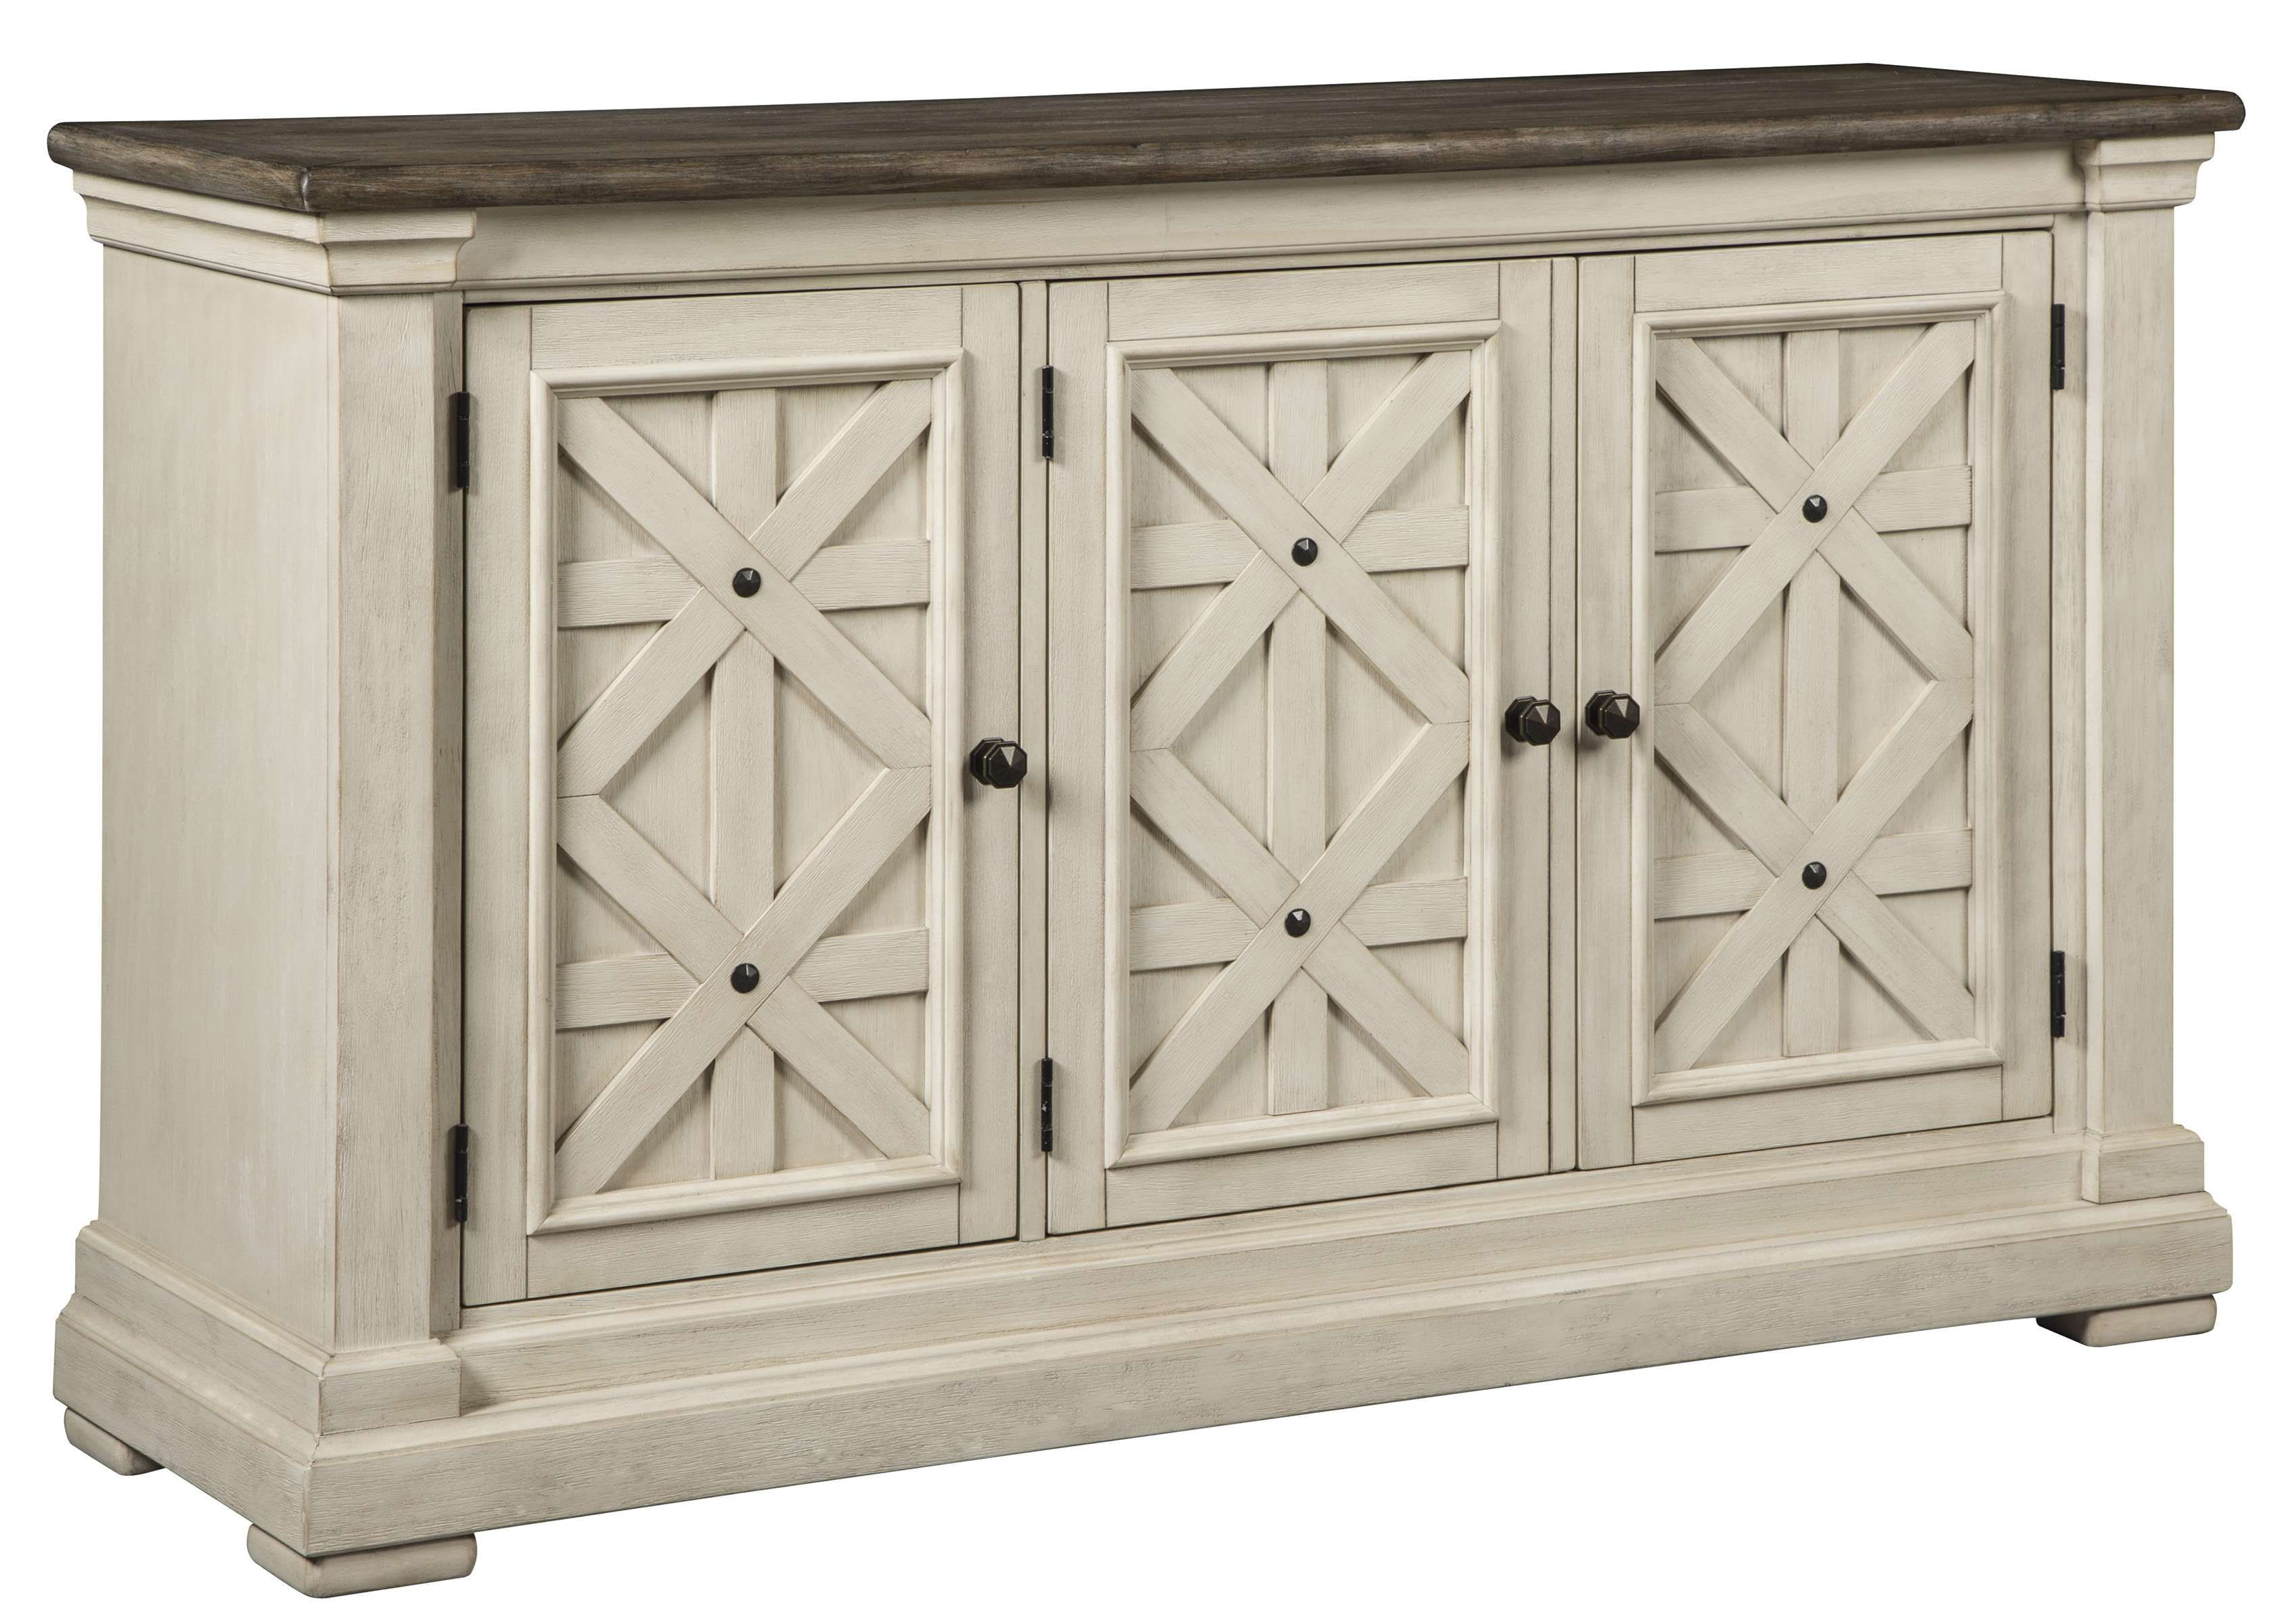 Signature Design By Ashley Bolanburg Two Tone Dining Room Server D647 60 Goedekers Com Dining Room Server Dining Room Buffet White Dining Room